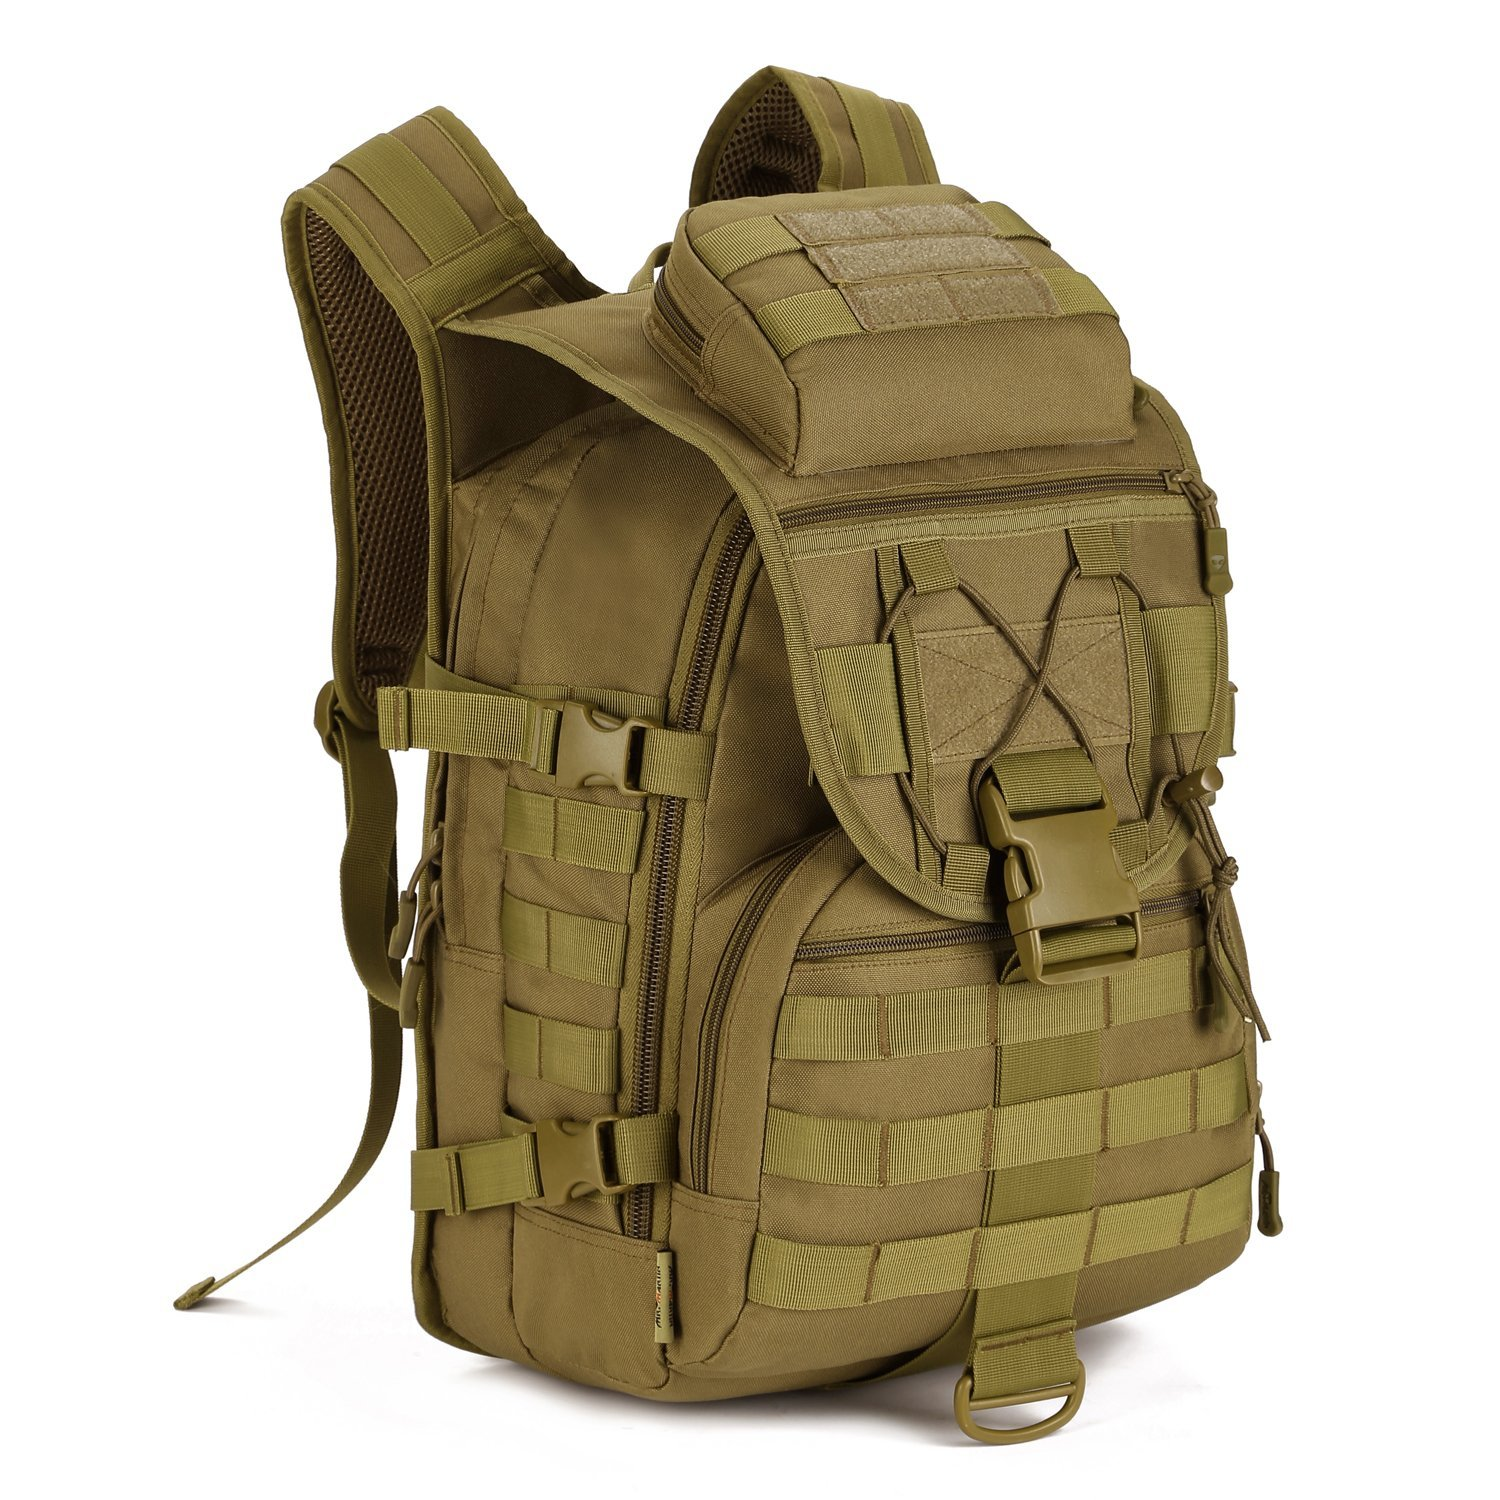 40L Outdoor Tactical Backpack Waterproof Coating Nylon 900D Swordfish X7 Hicking Rucksack bag Military quality